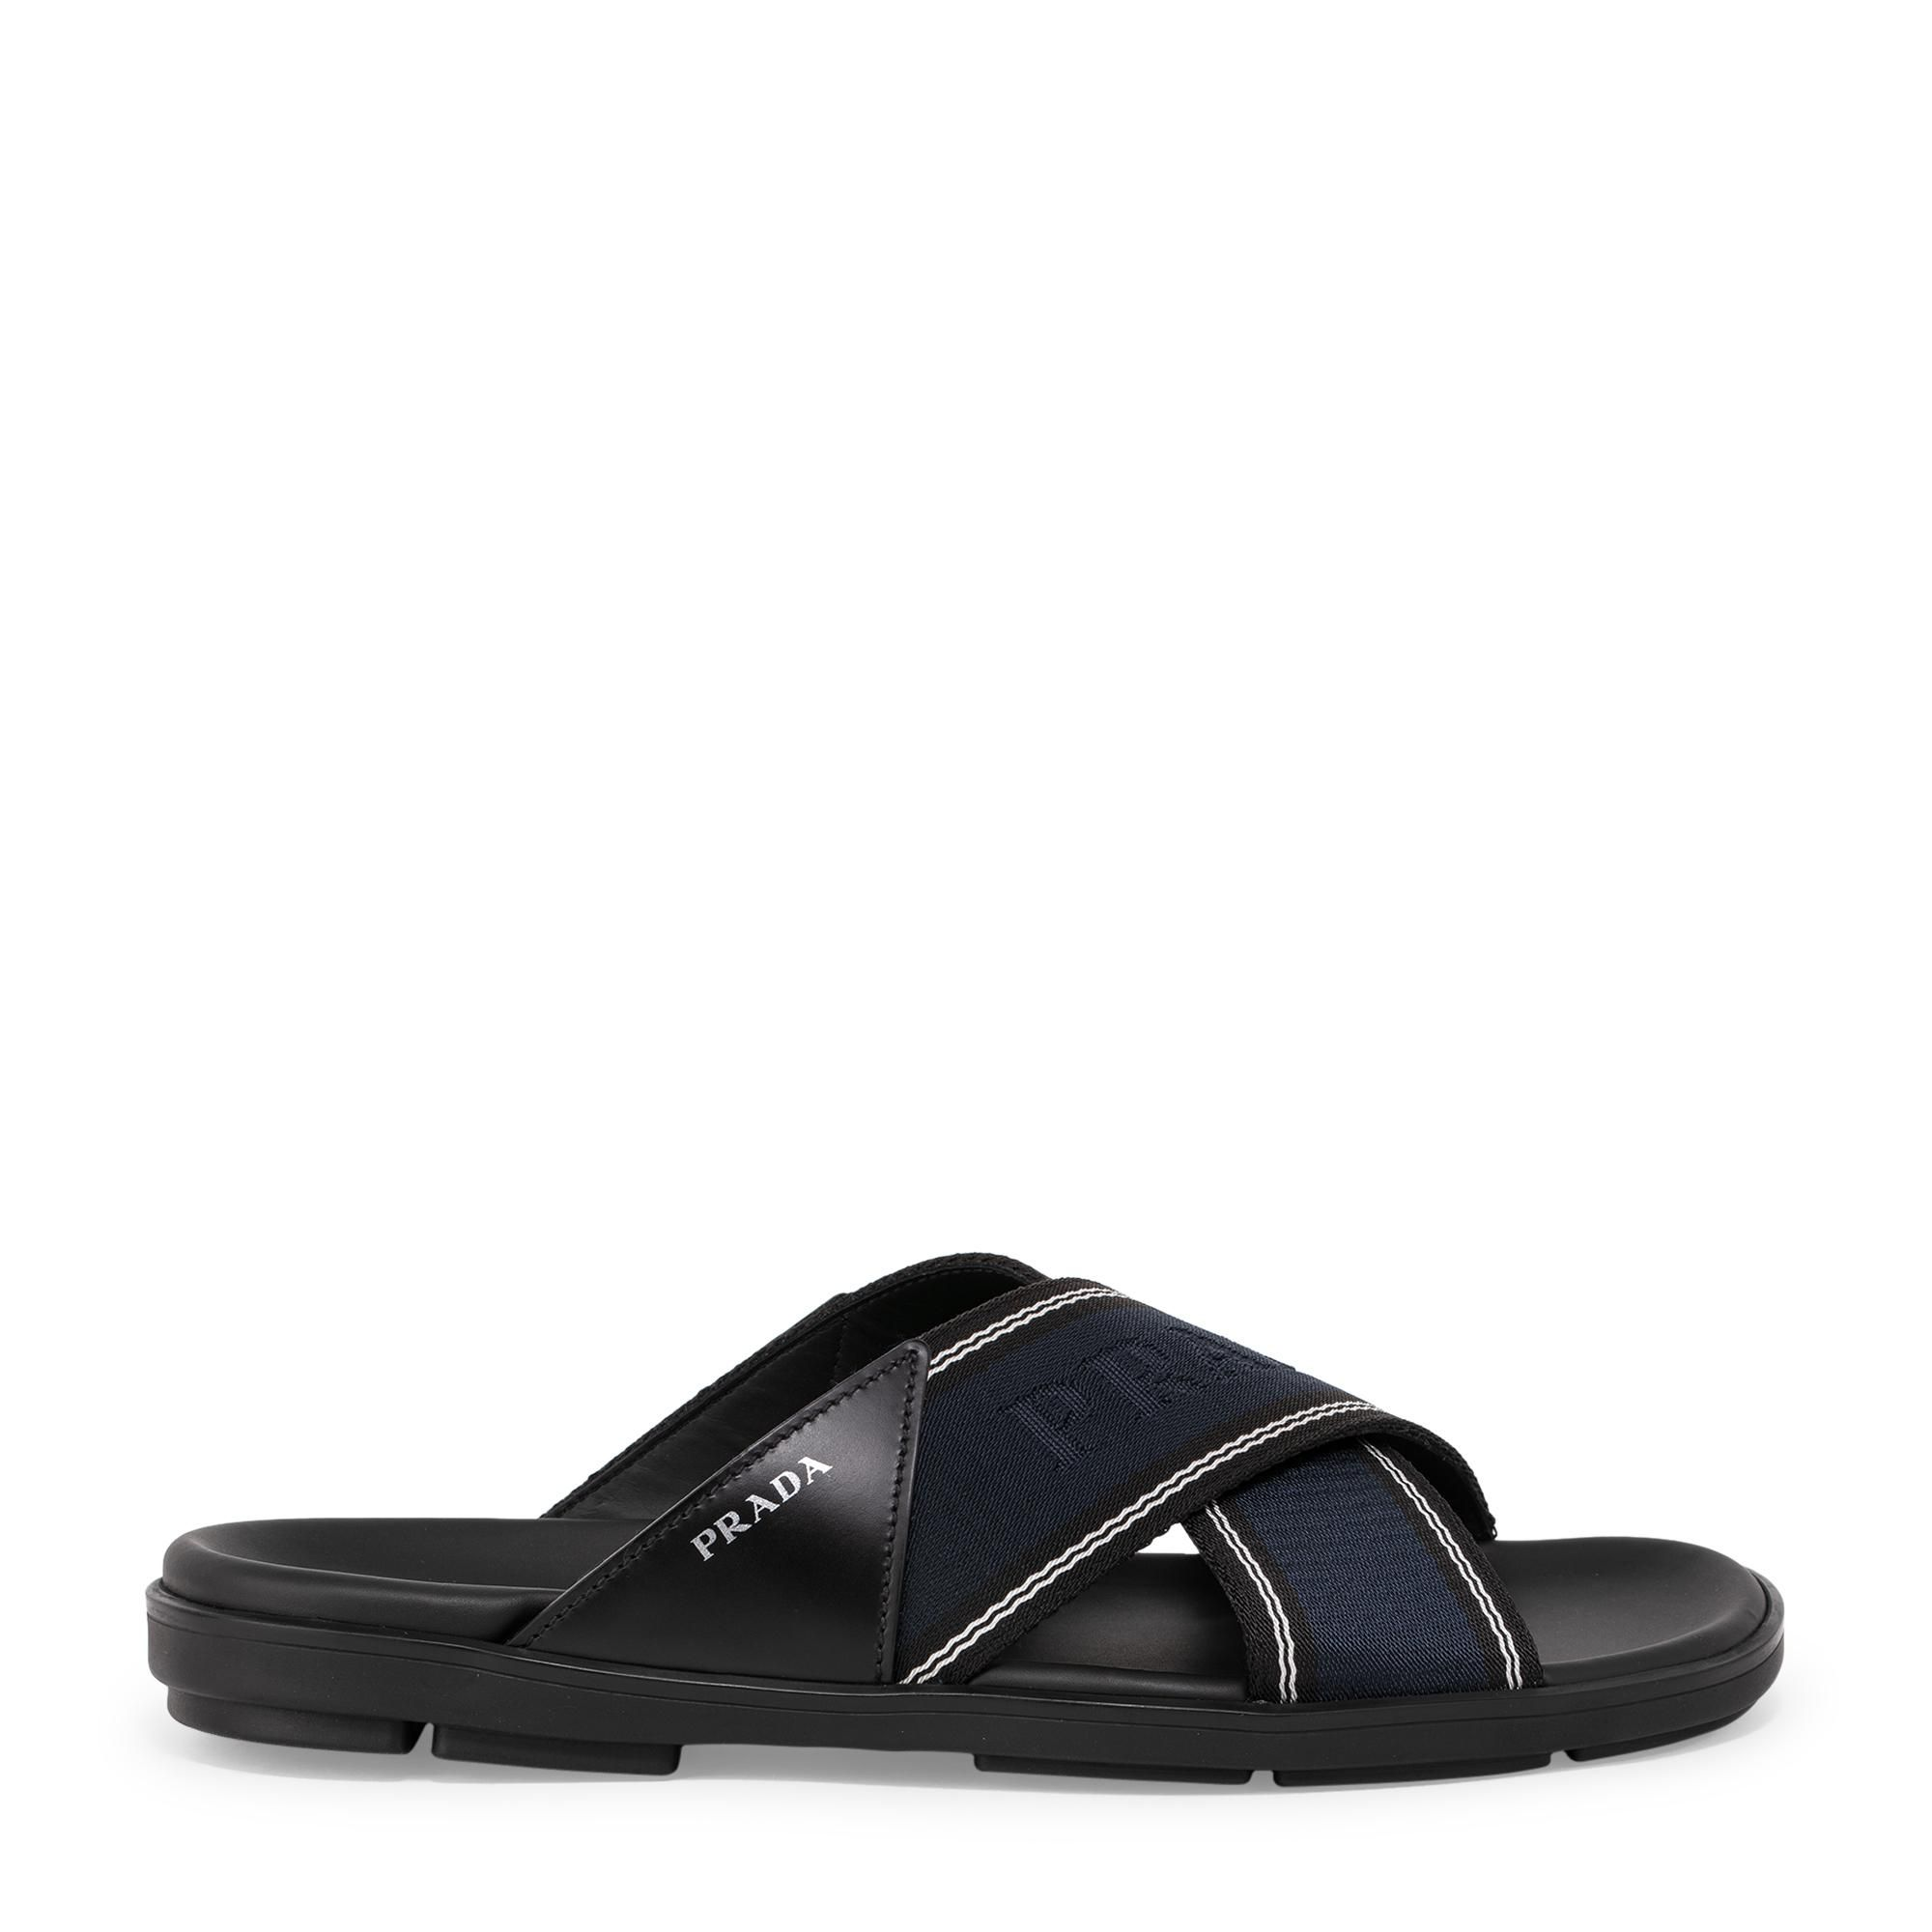 Leather and nylon sandals